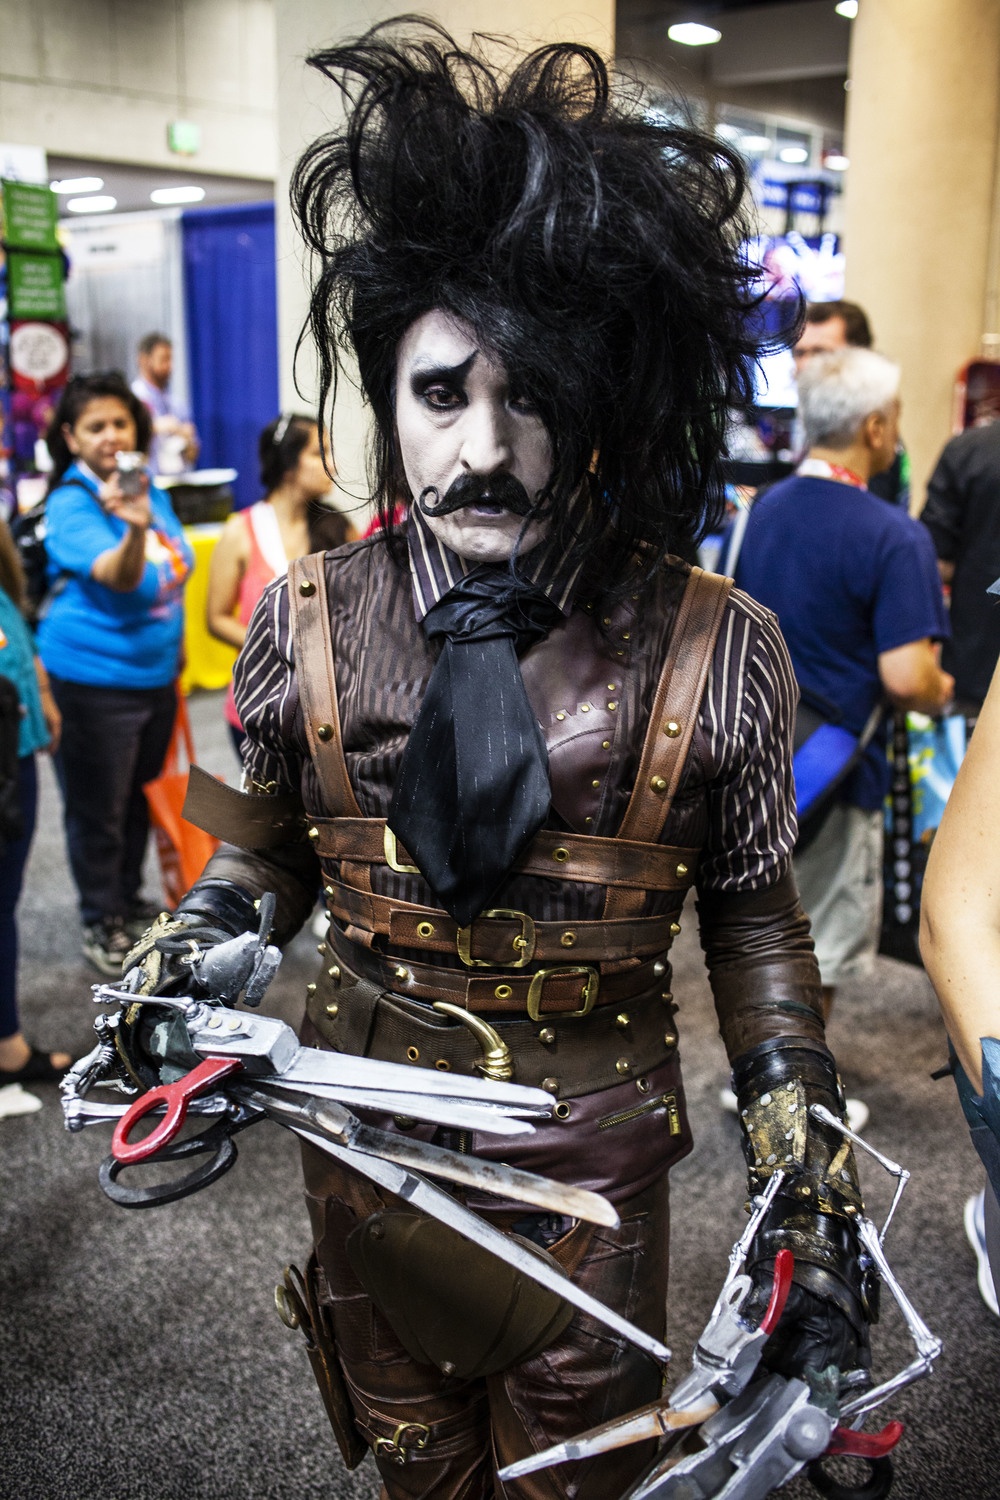 Steampunk Edward Scissorhands by Joel Feria HIGH.jpg